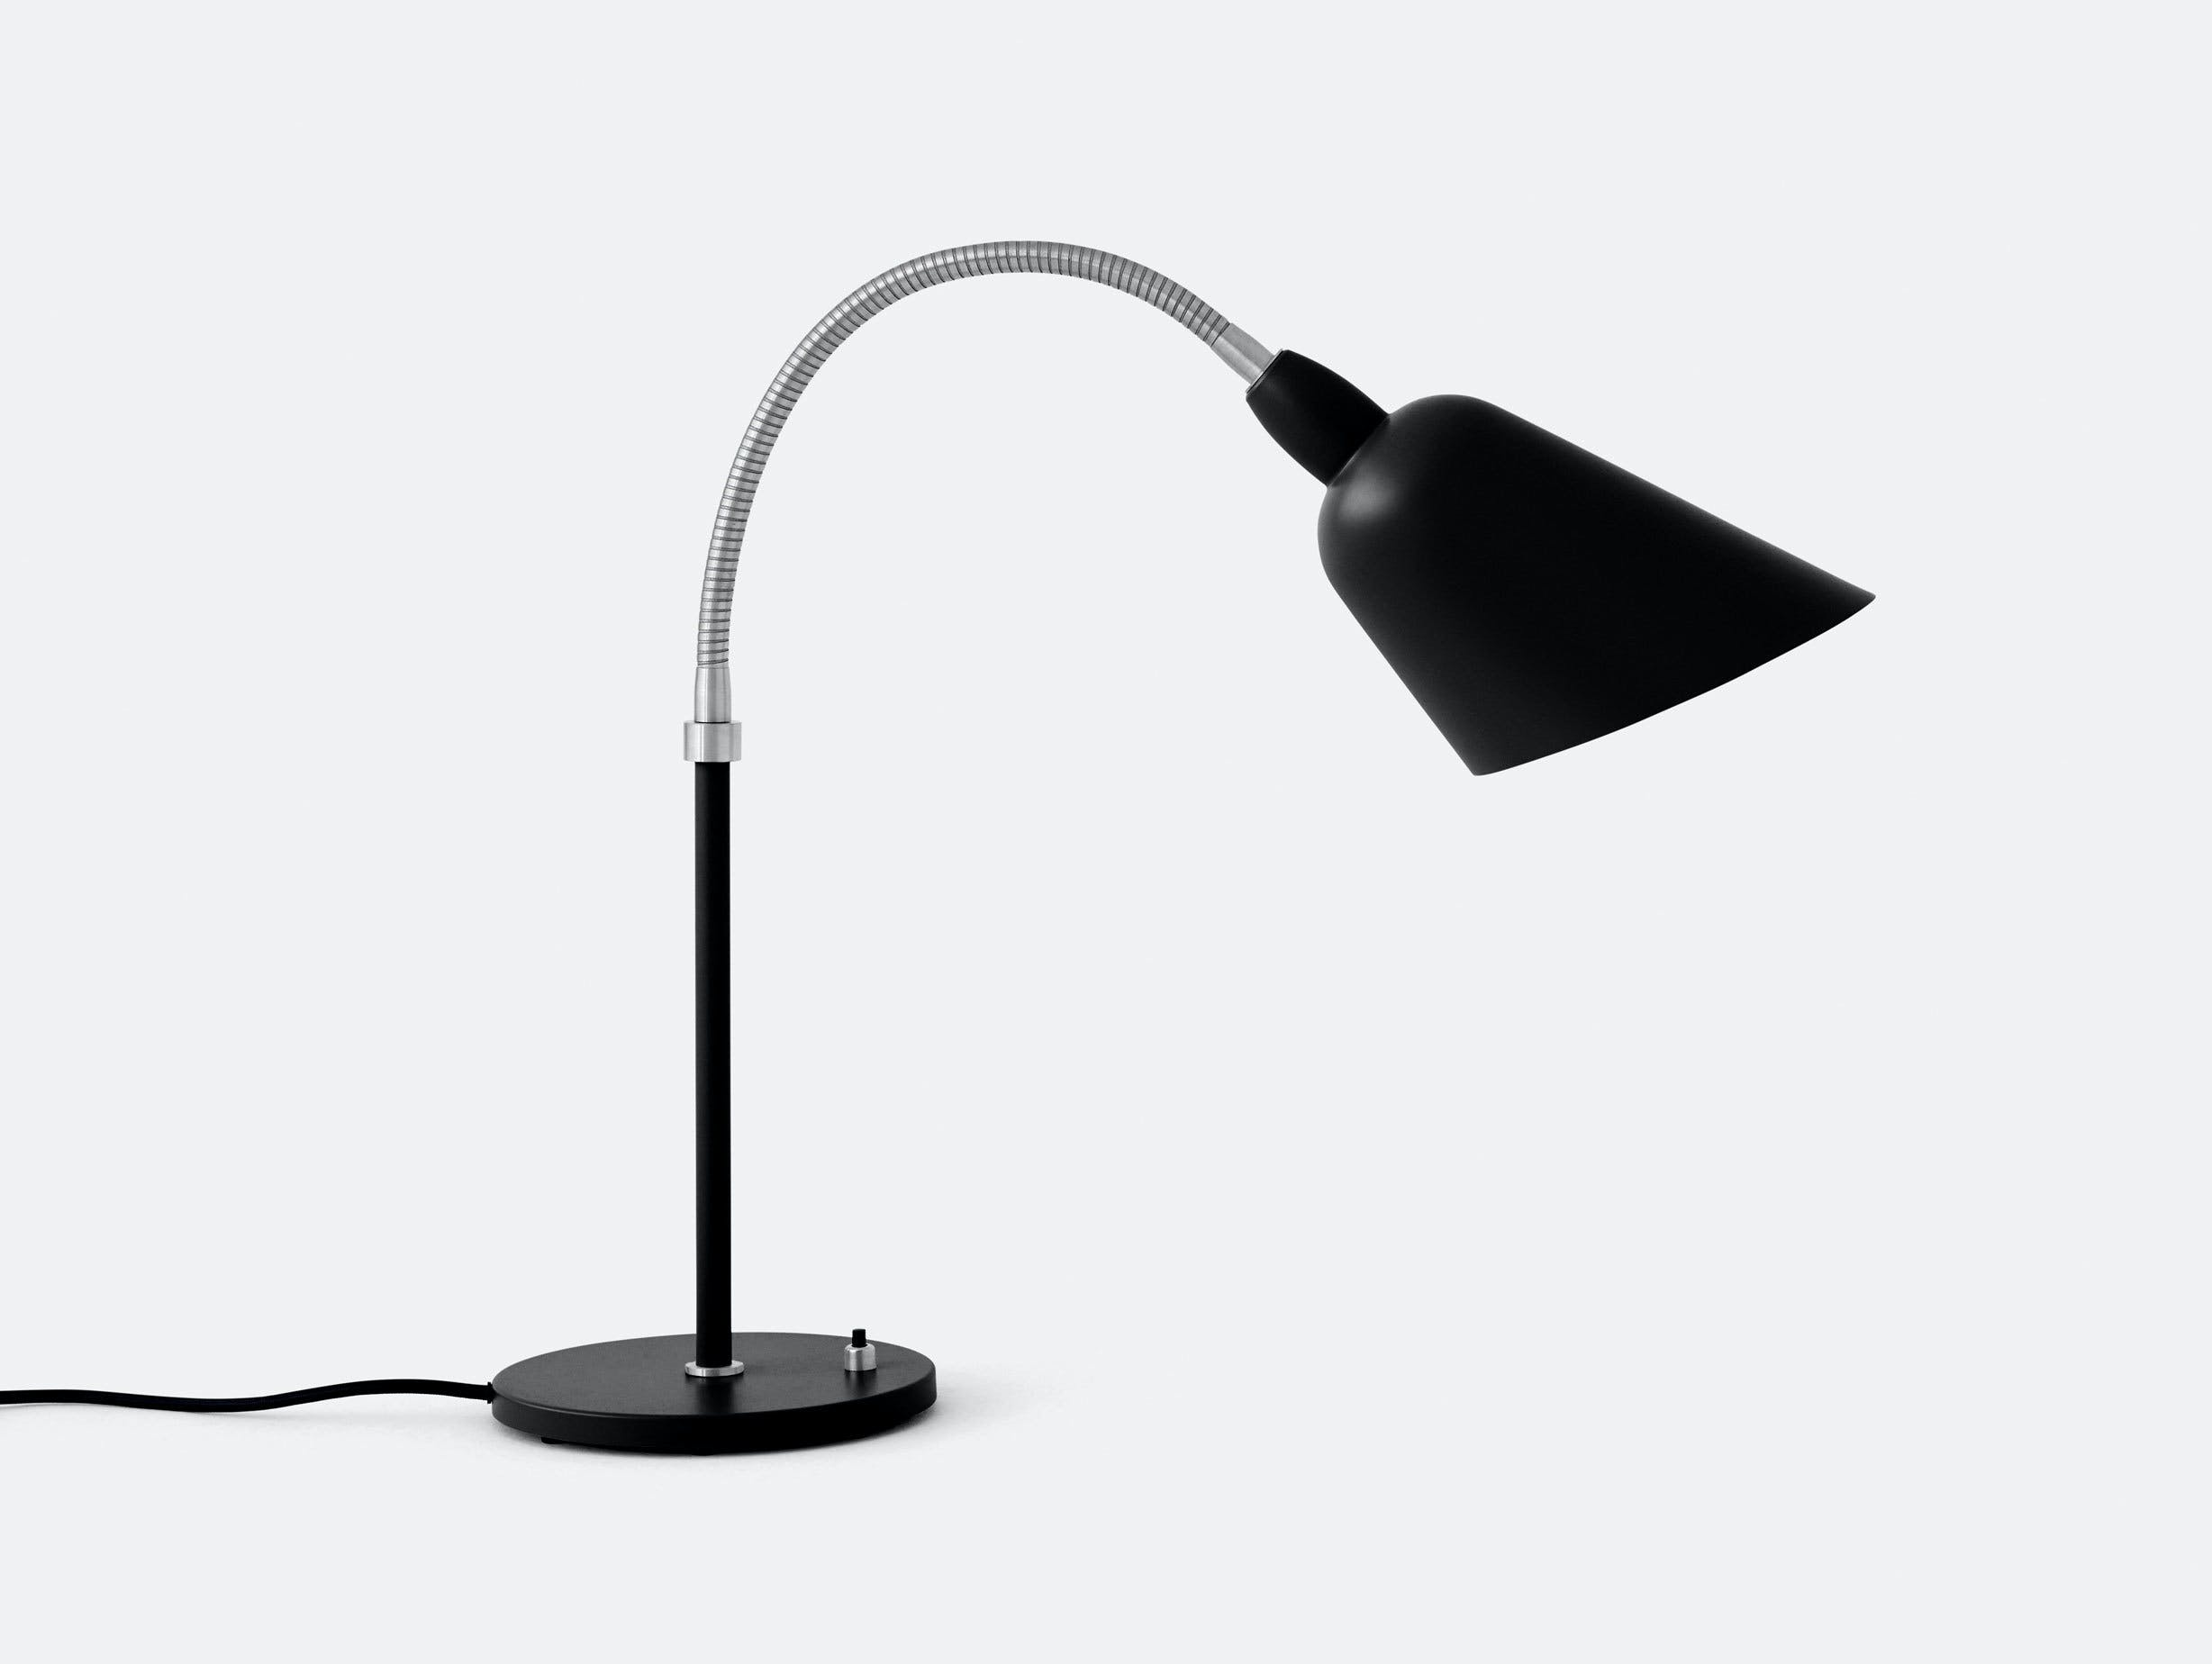 And Tradition Bellevue table lamp AJ8 black steel Arne Jacobsen